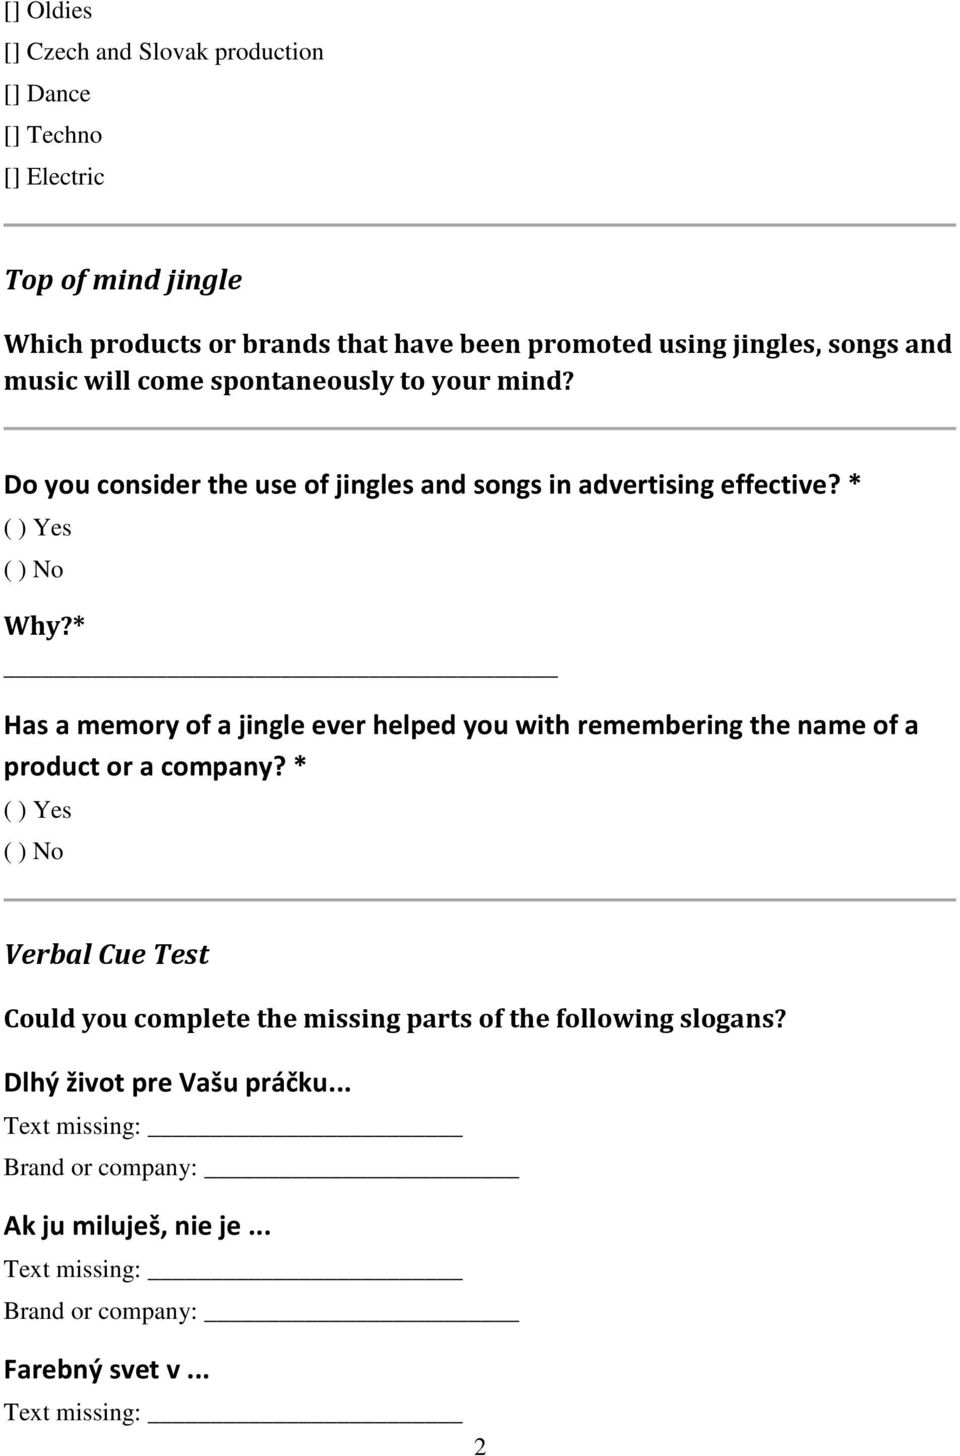 Impact of Songs and Jingles Used in Advertising on Brand and Product